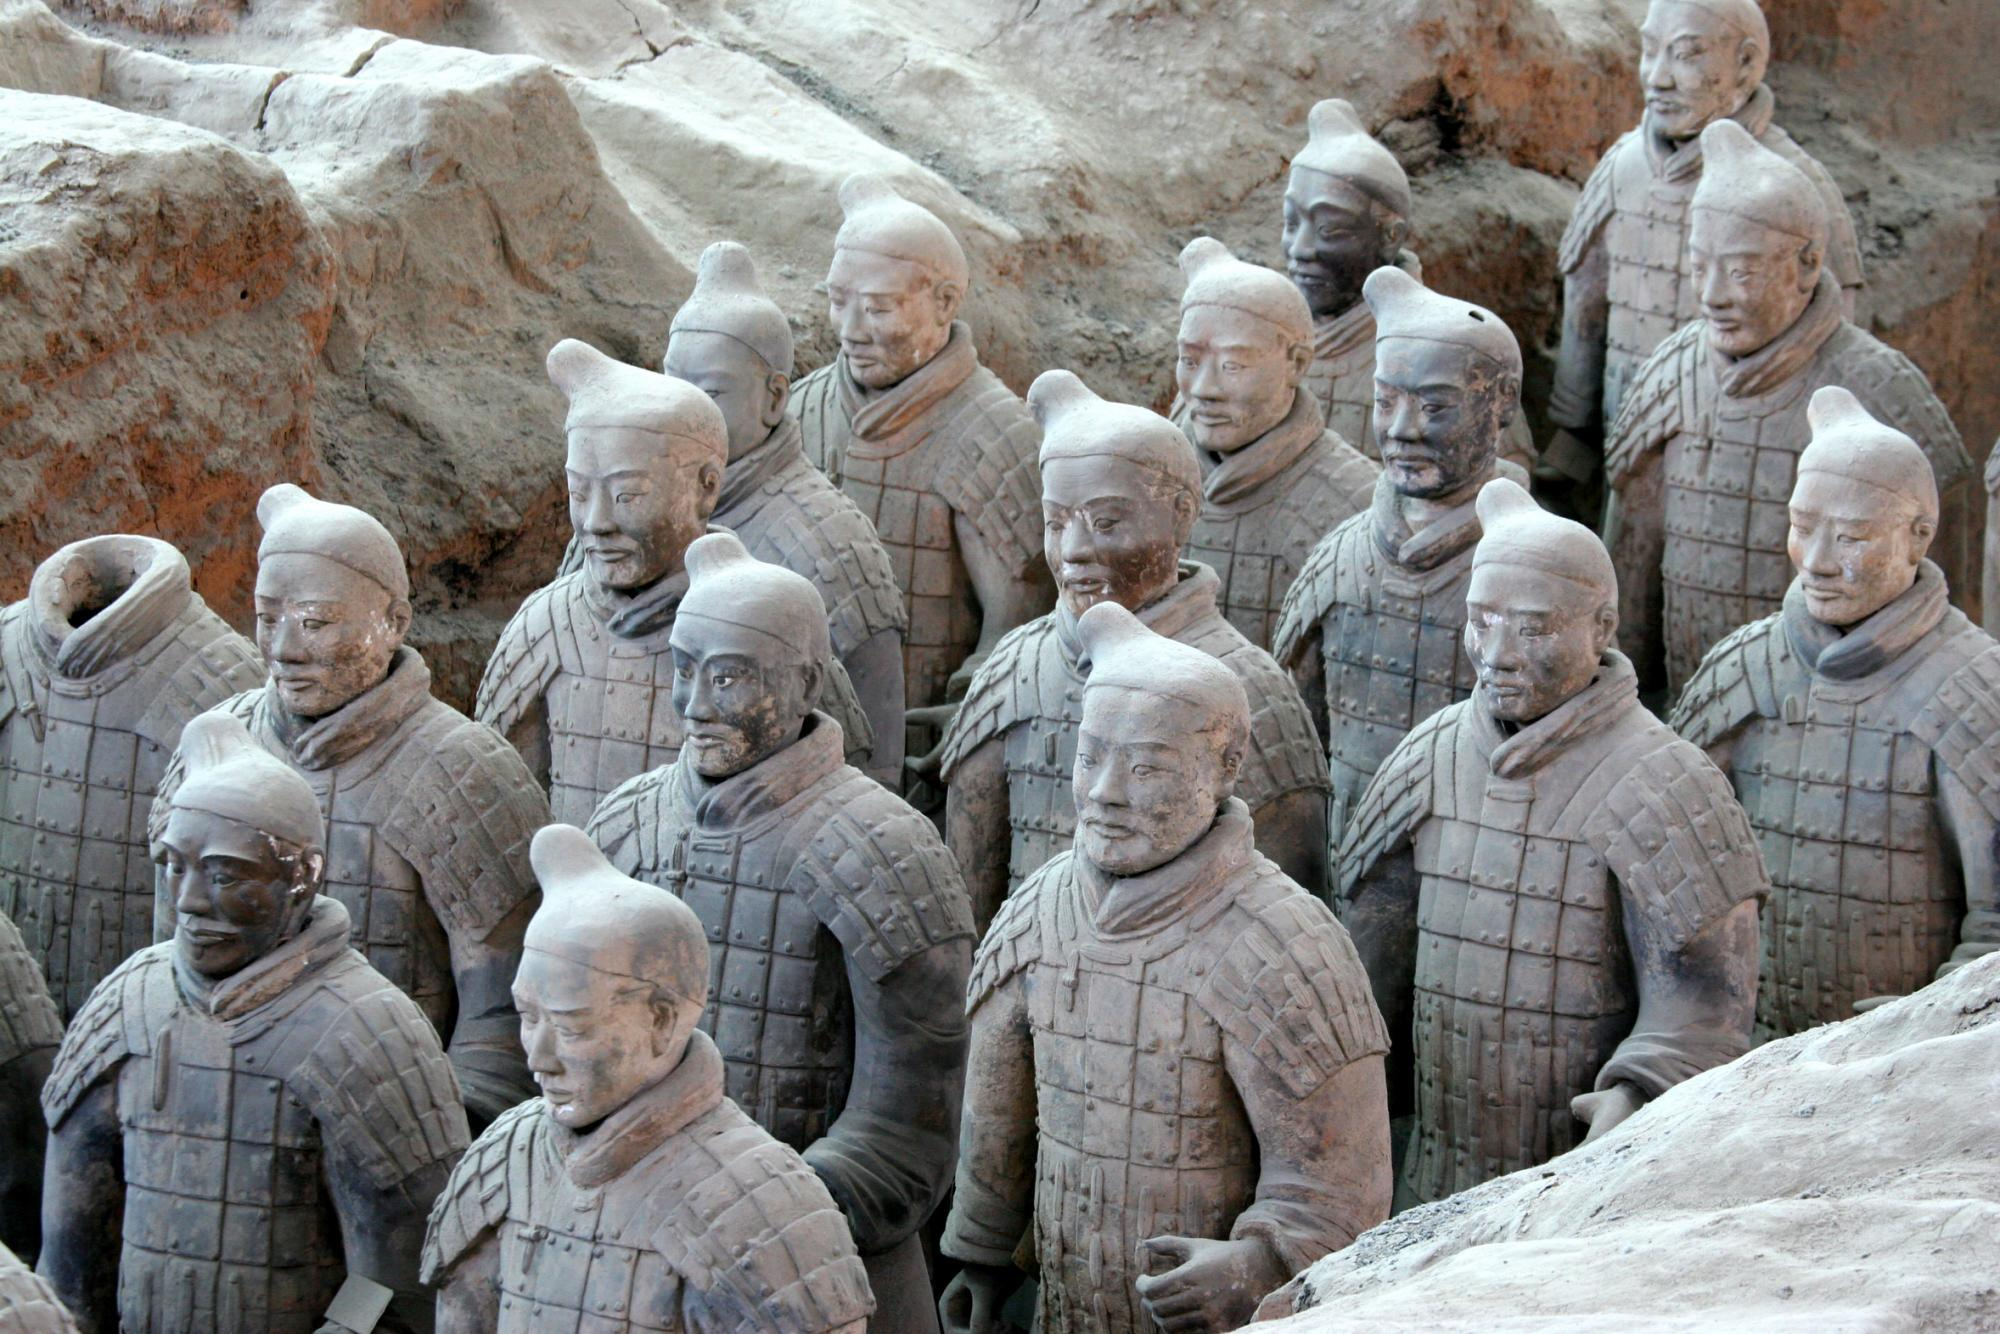 The Xian Terracotta Warriors